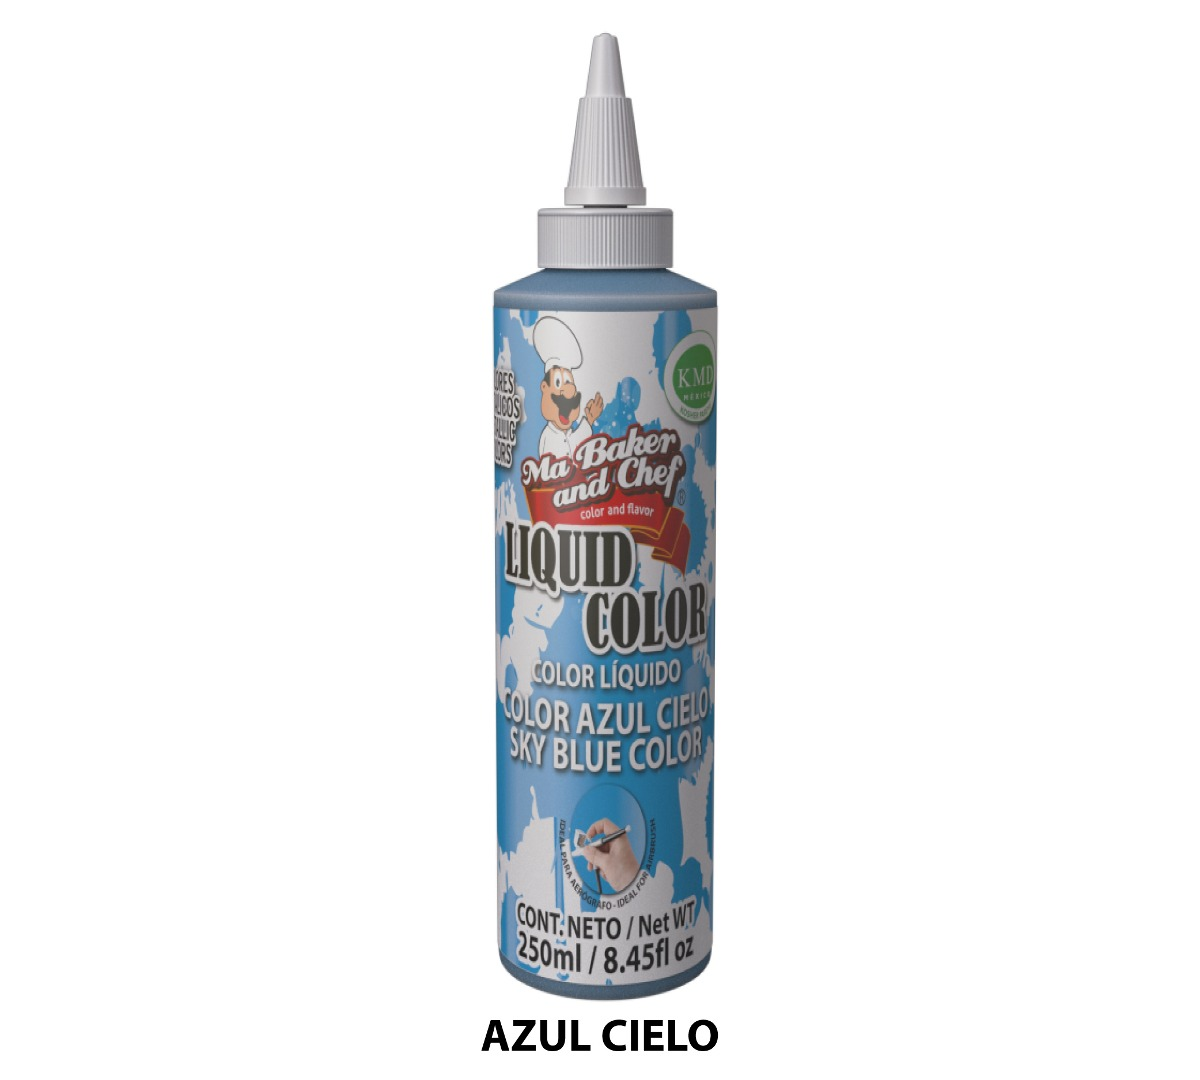 Liquid Color metálico 250 ml - Ma Baker and Chef